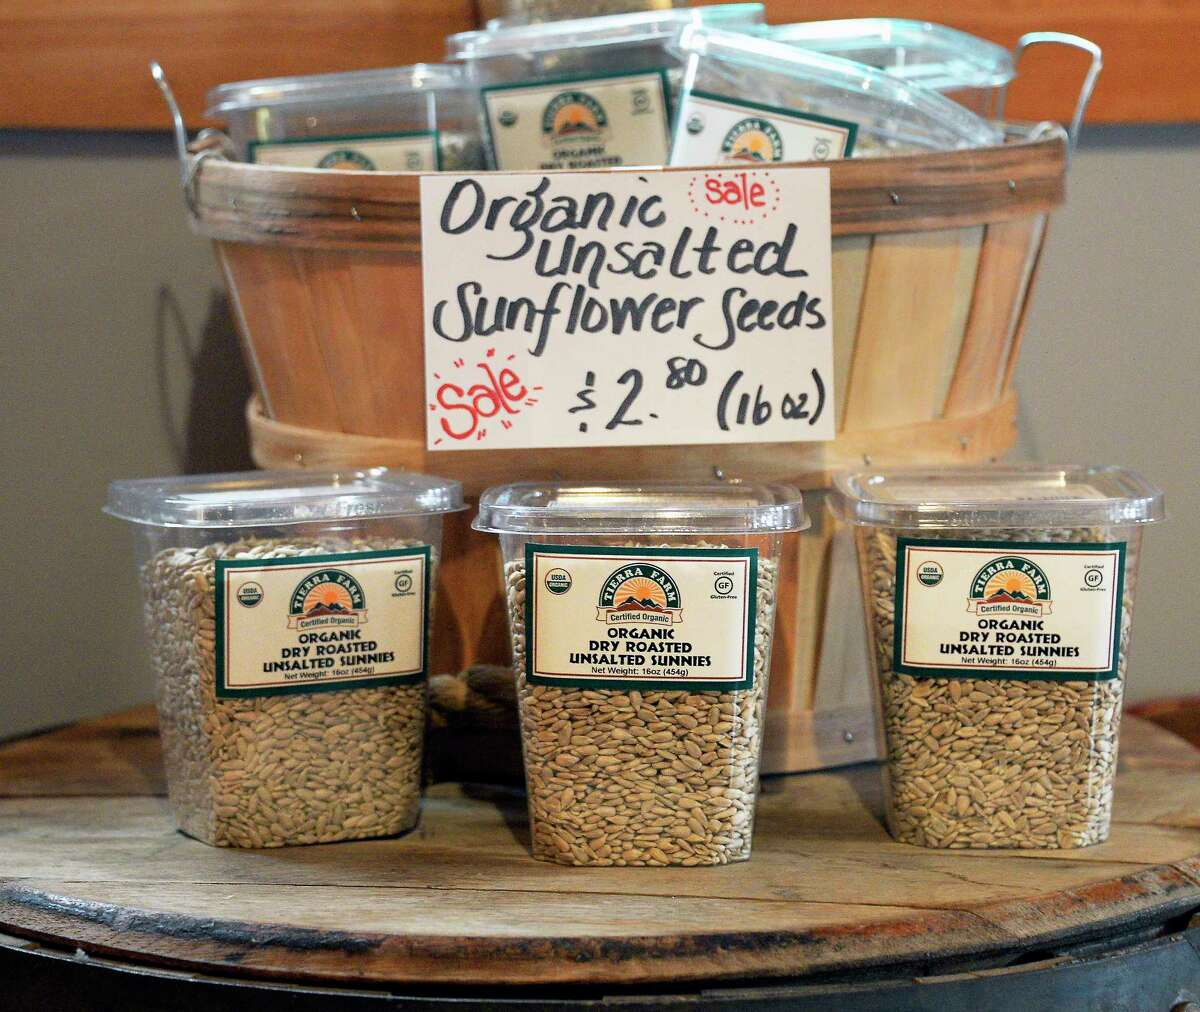 Organic sunflower seeds on display at Tierra Farm's retail store Friday March 9, 2018 in Valatie, NY. (John Carl D'Annibale/Times Union)